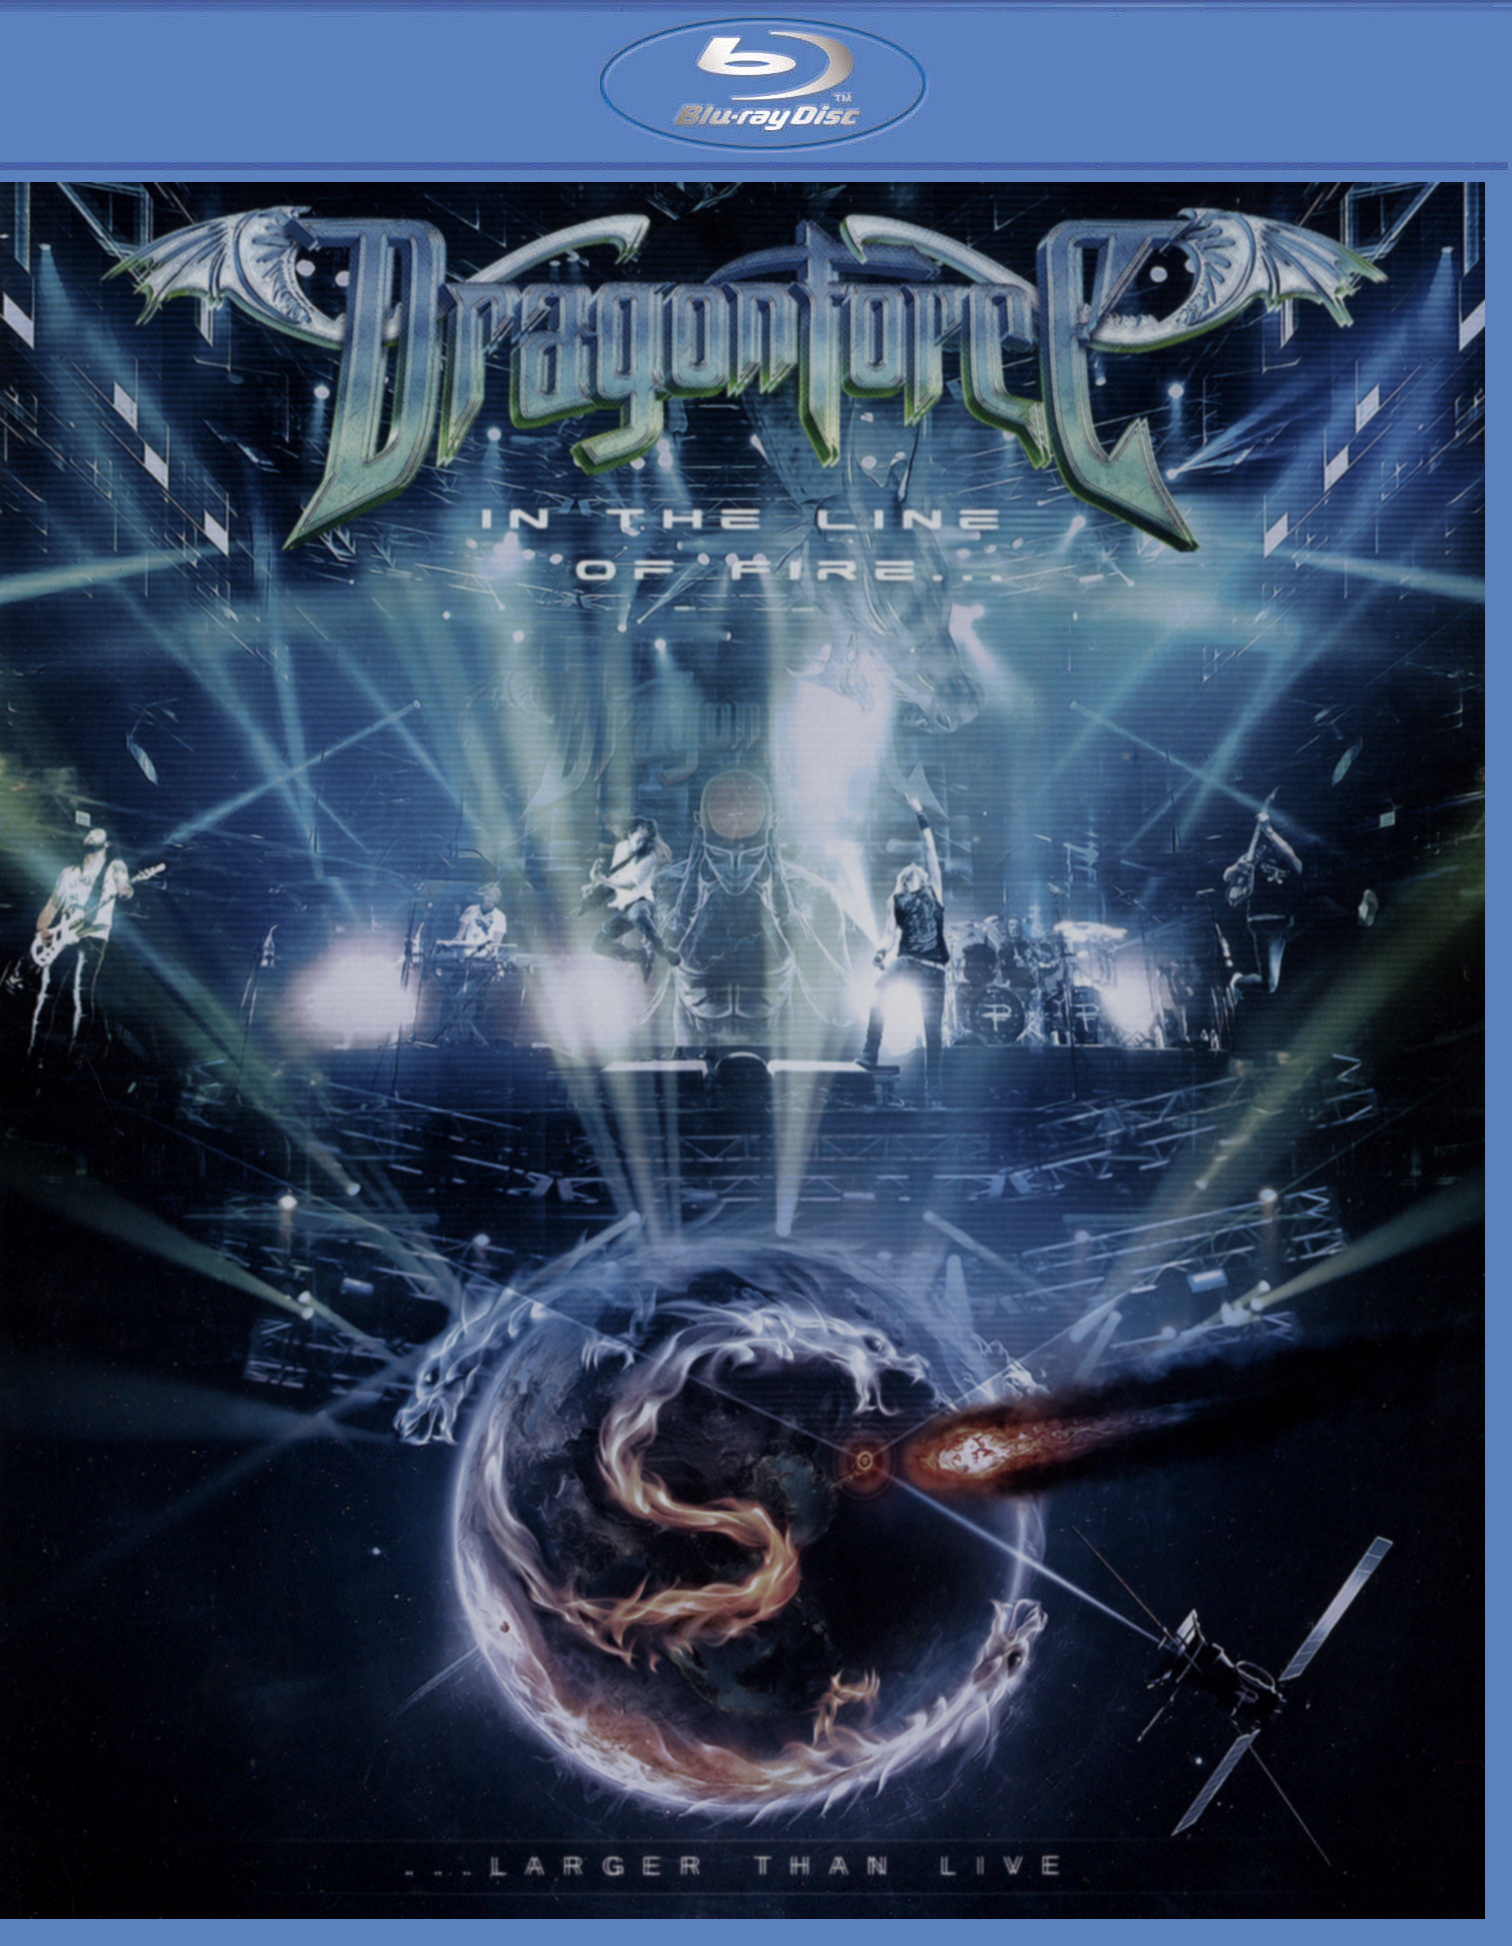 Dragonforce: In the Line of Fire... Larger Than Live